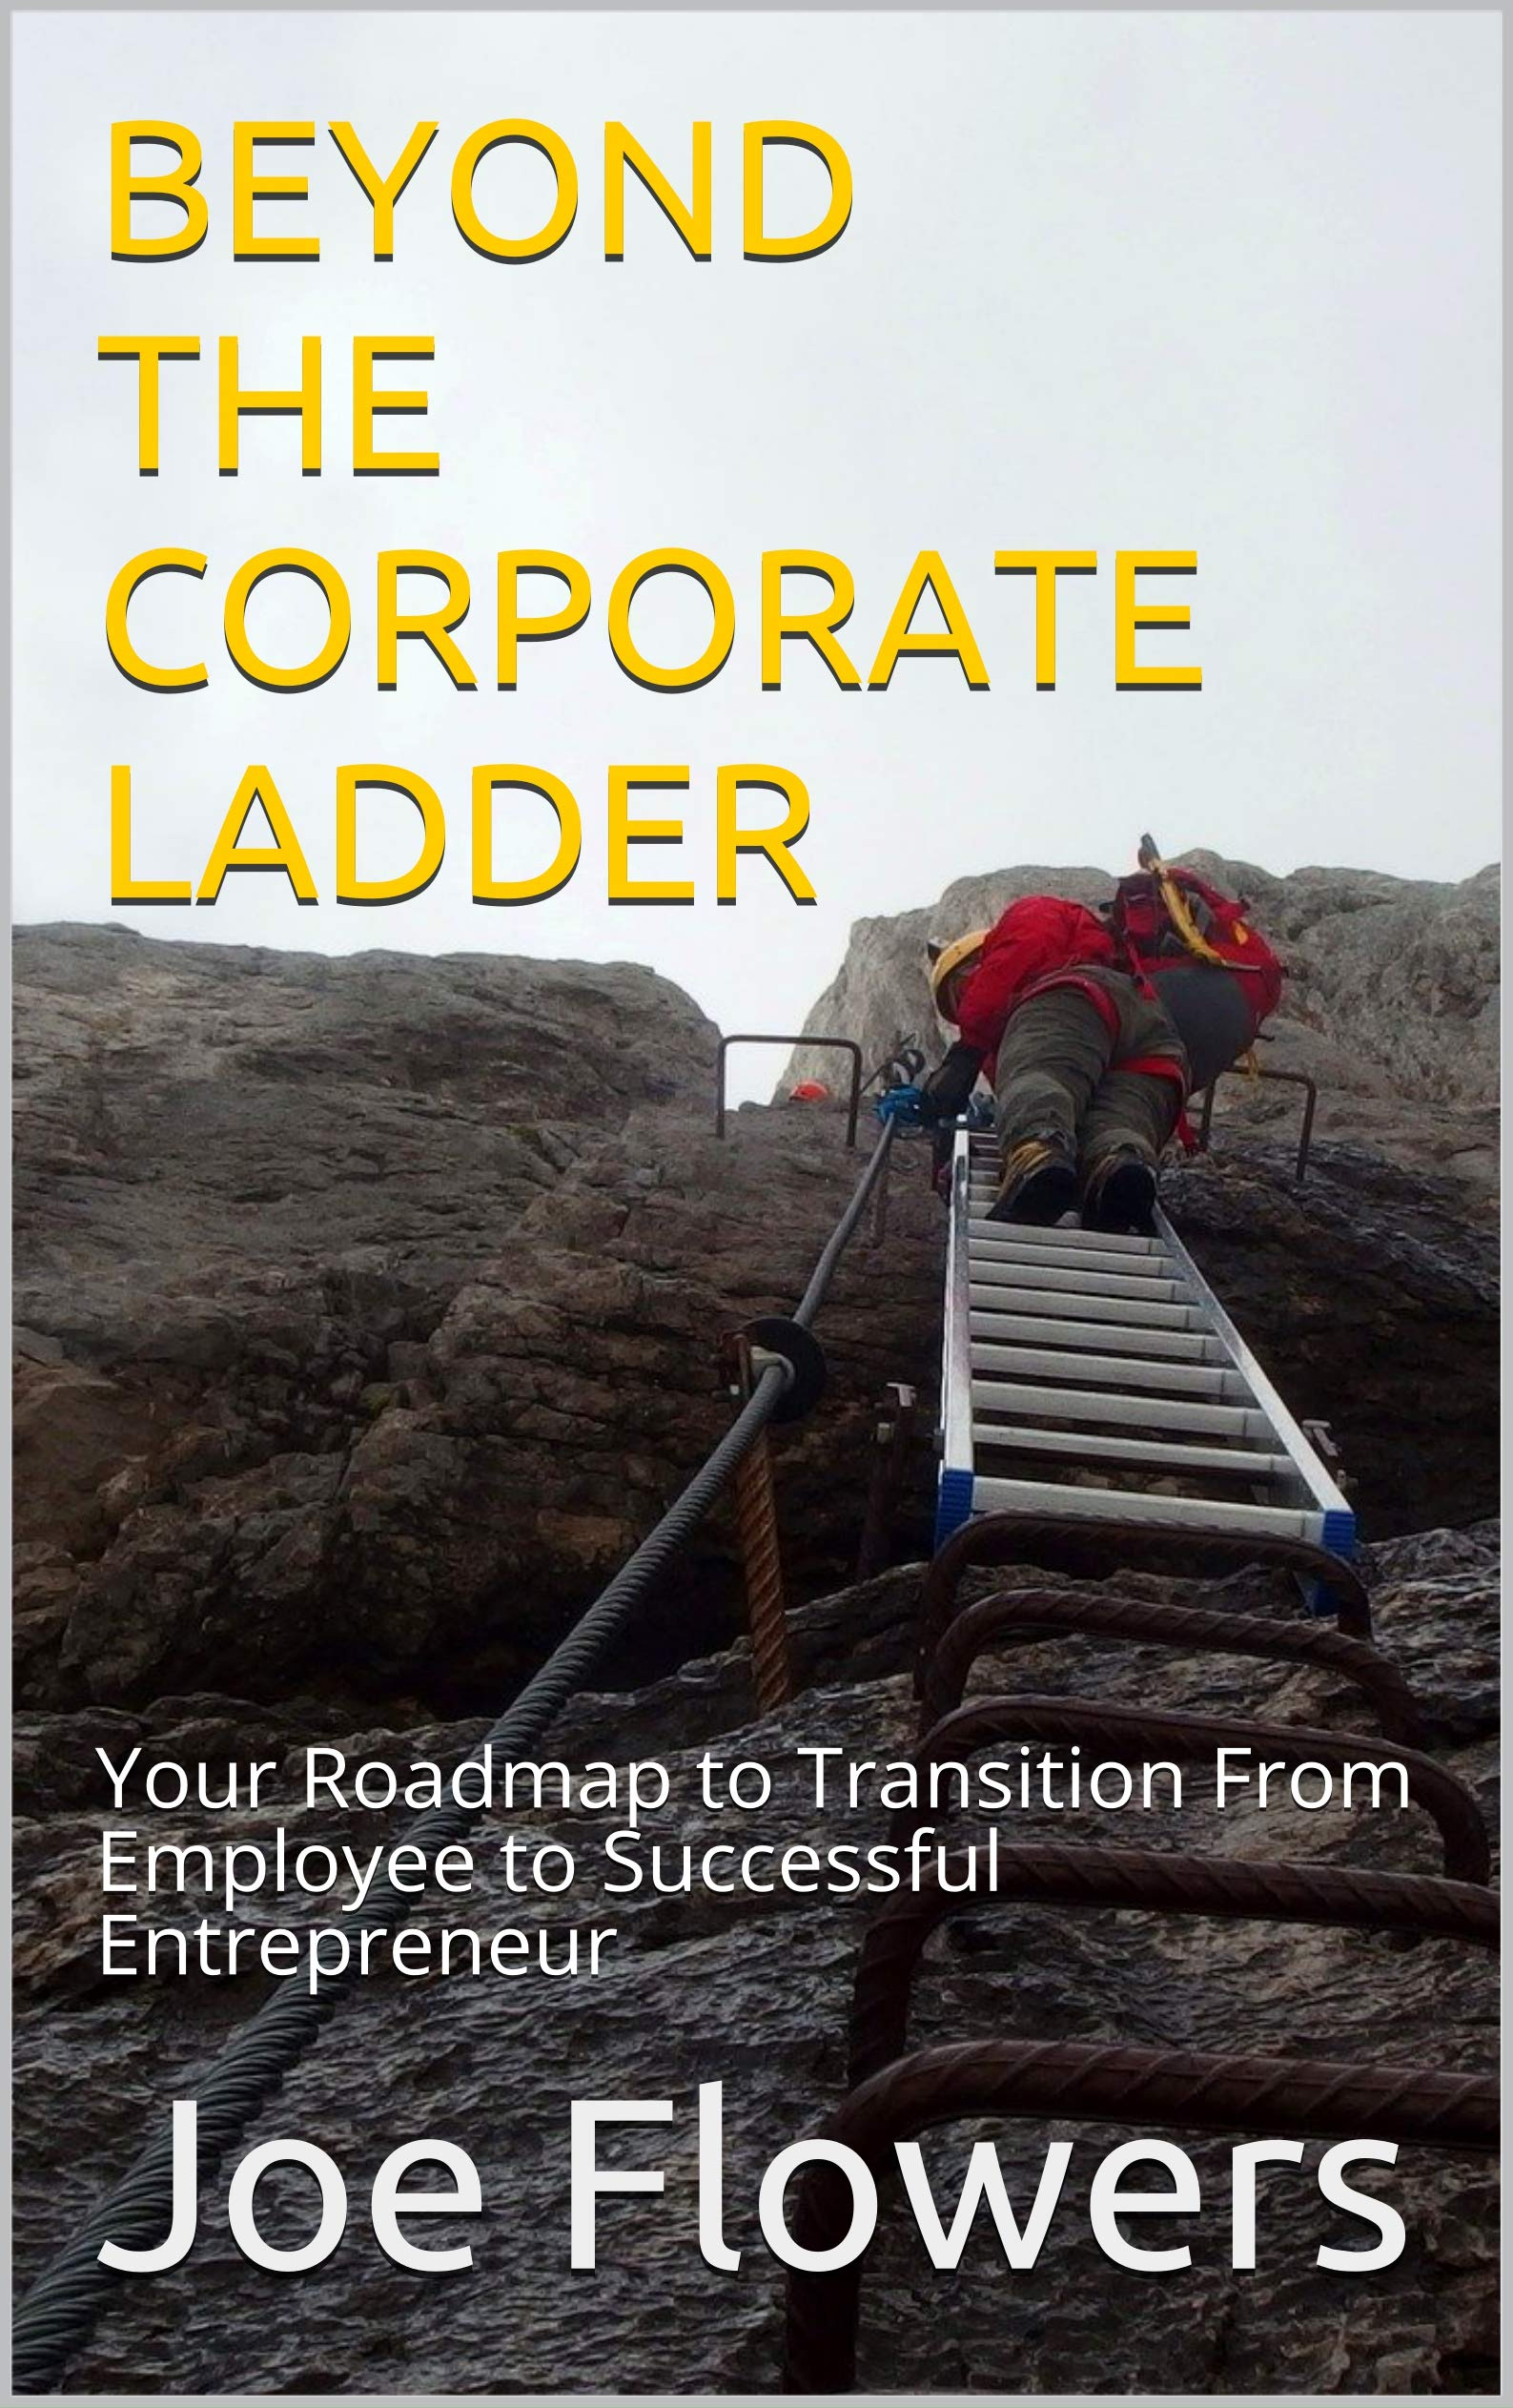 Beyond the Corporate Ladder: Your Roadmap to Transition From Employee to Successful Entrepreneur